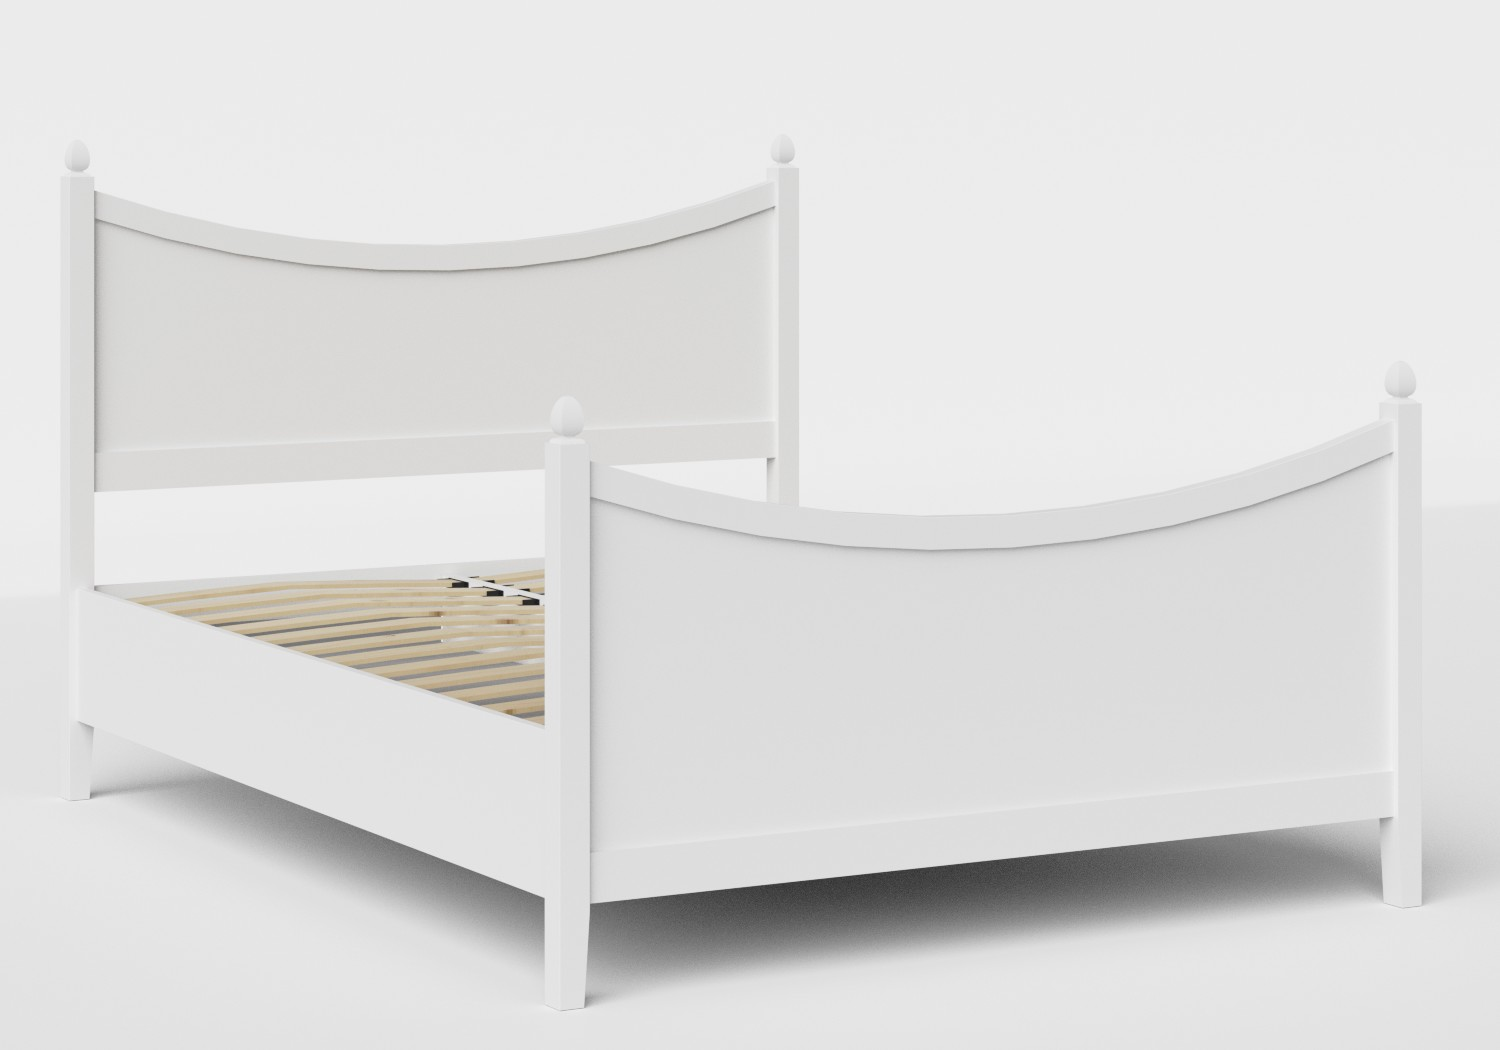 Blake Wood Bed in White shown with slatted frame